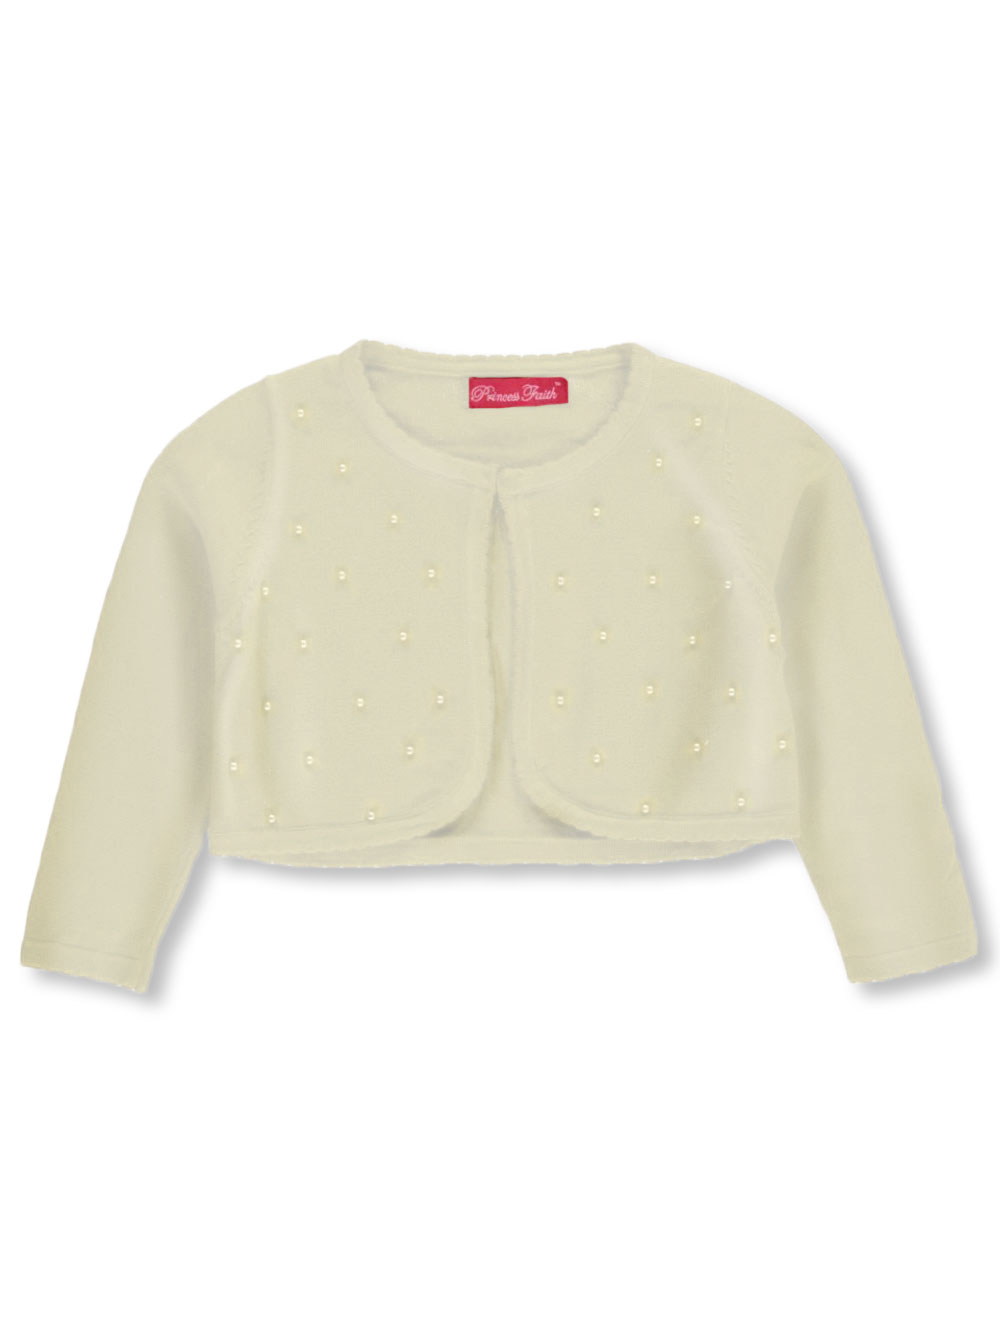 "Princess Faith ""Pearl Scattered"" Shrug Cardigan (Sizes 4 - 6X) at Sears.com"